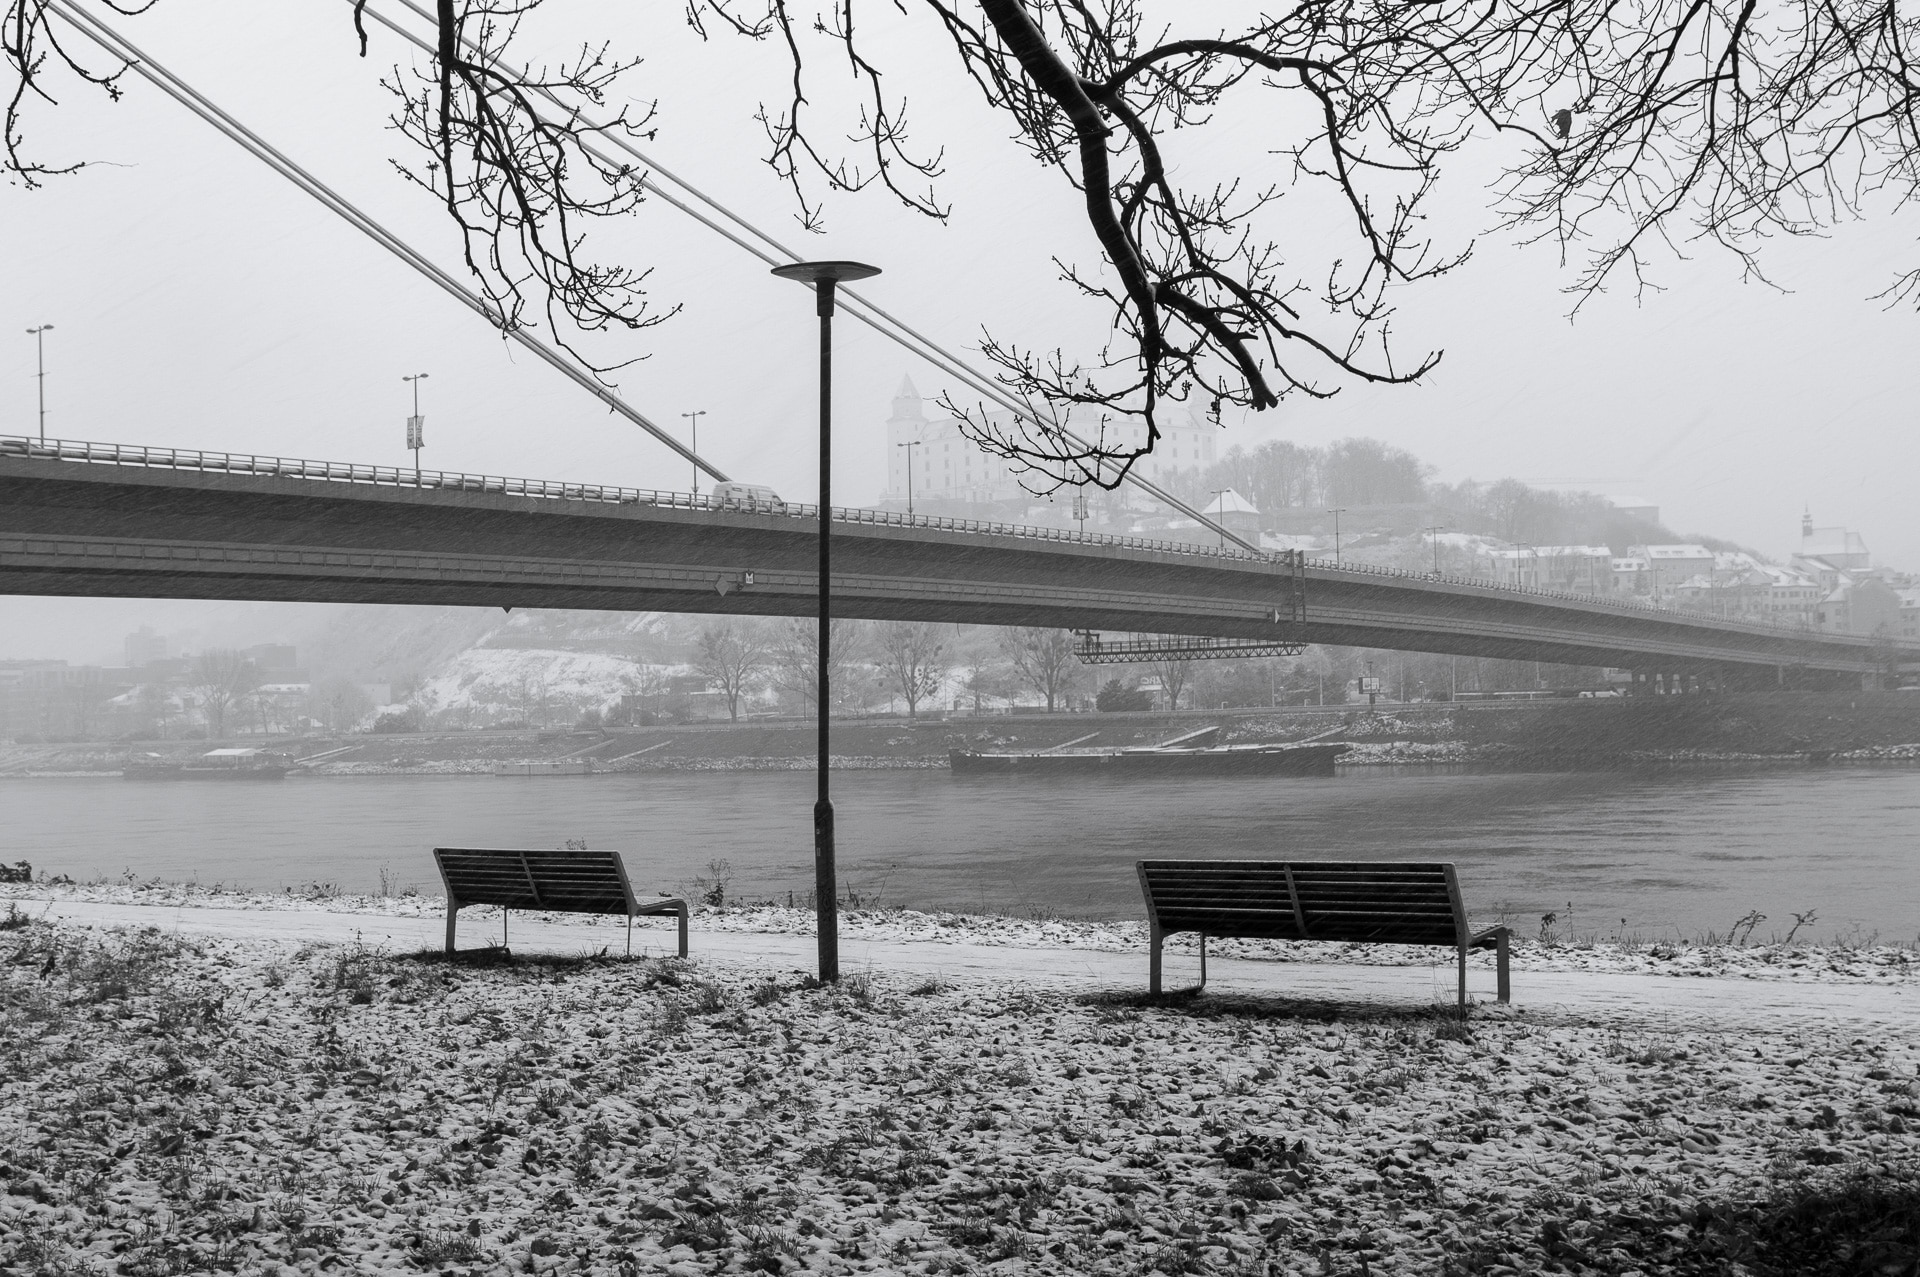 Bratislava The First Snow Featured image